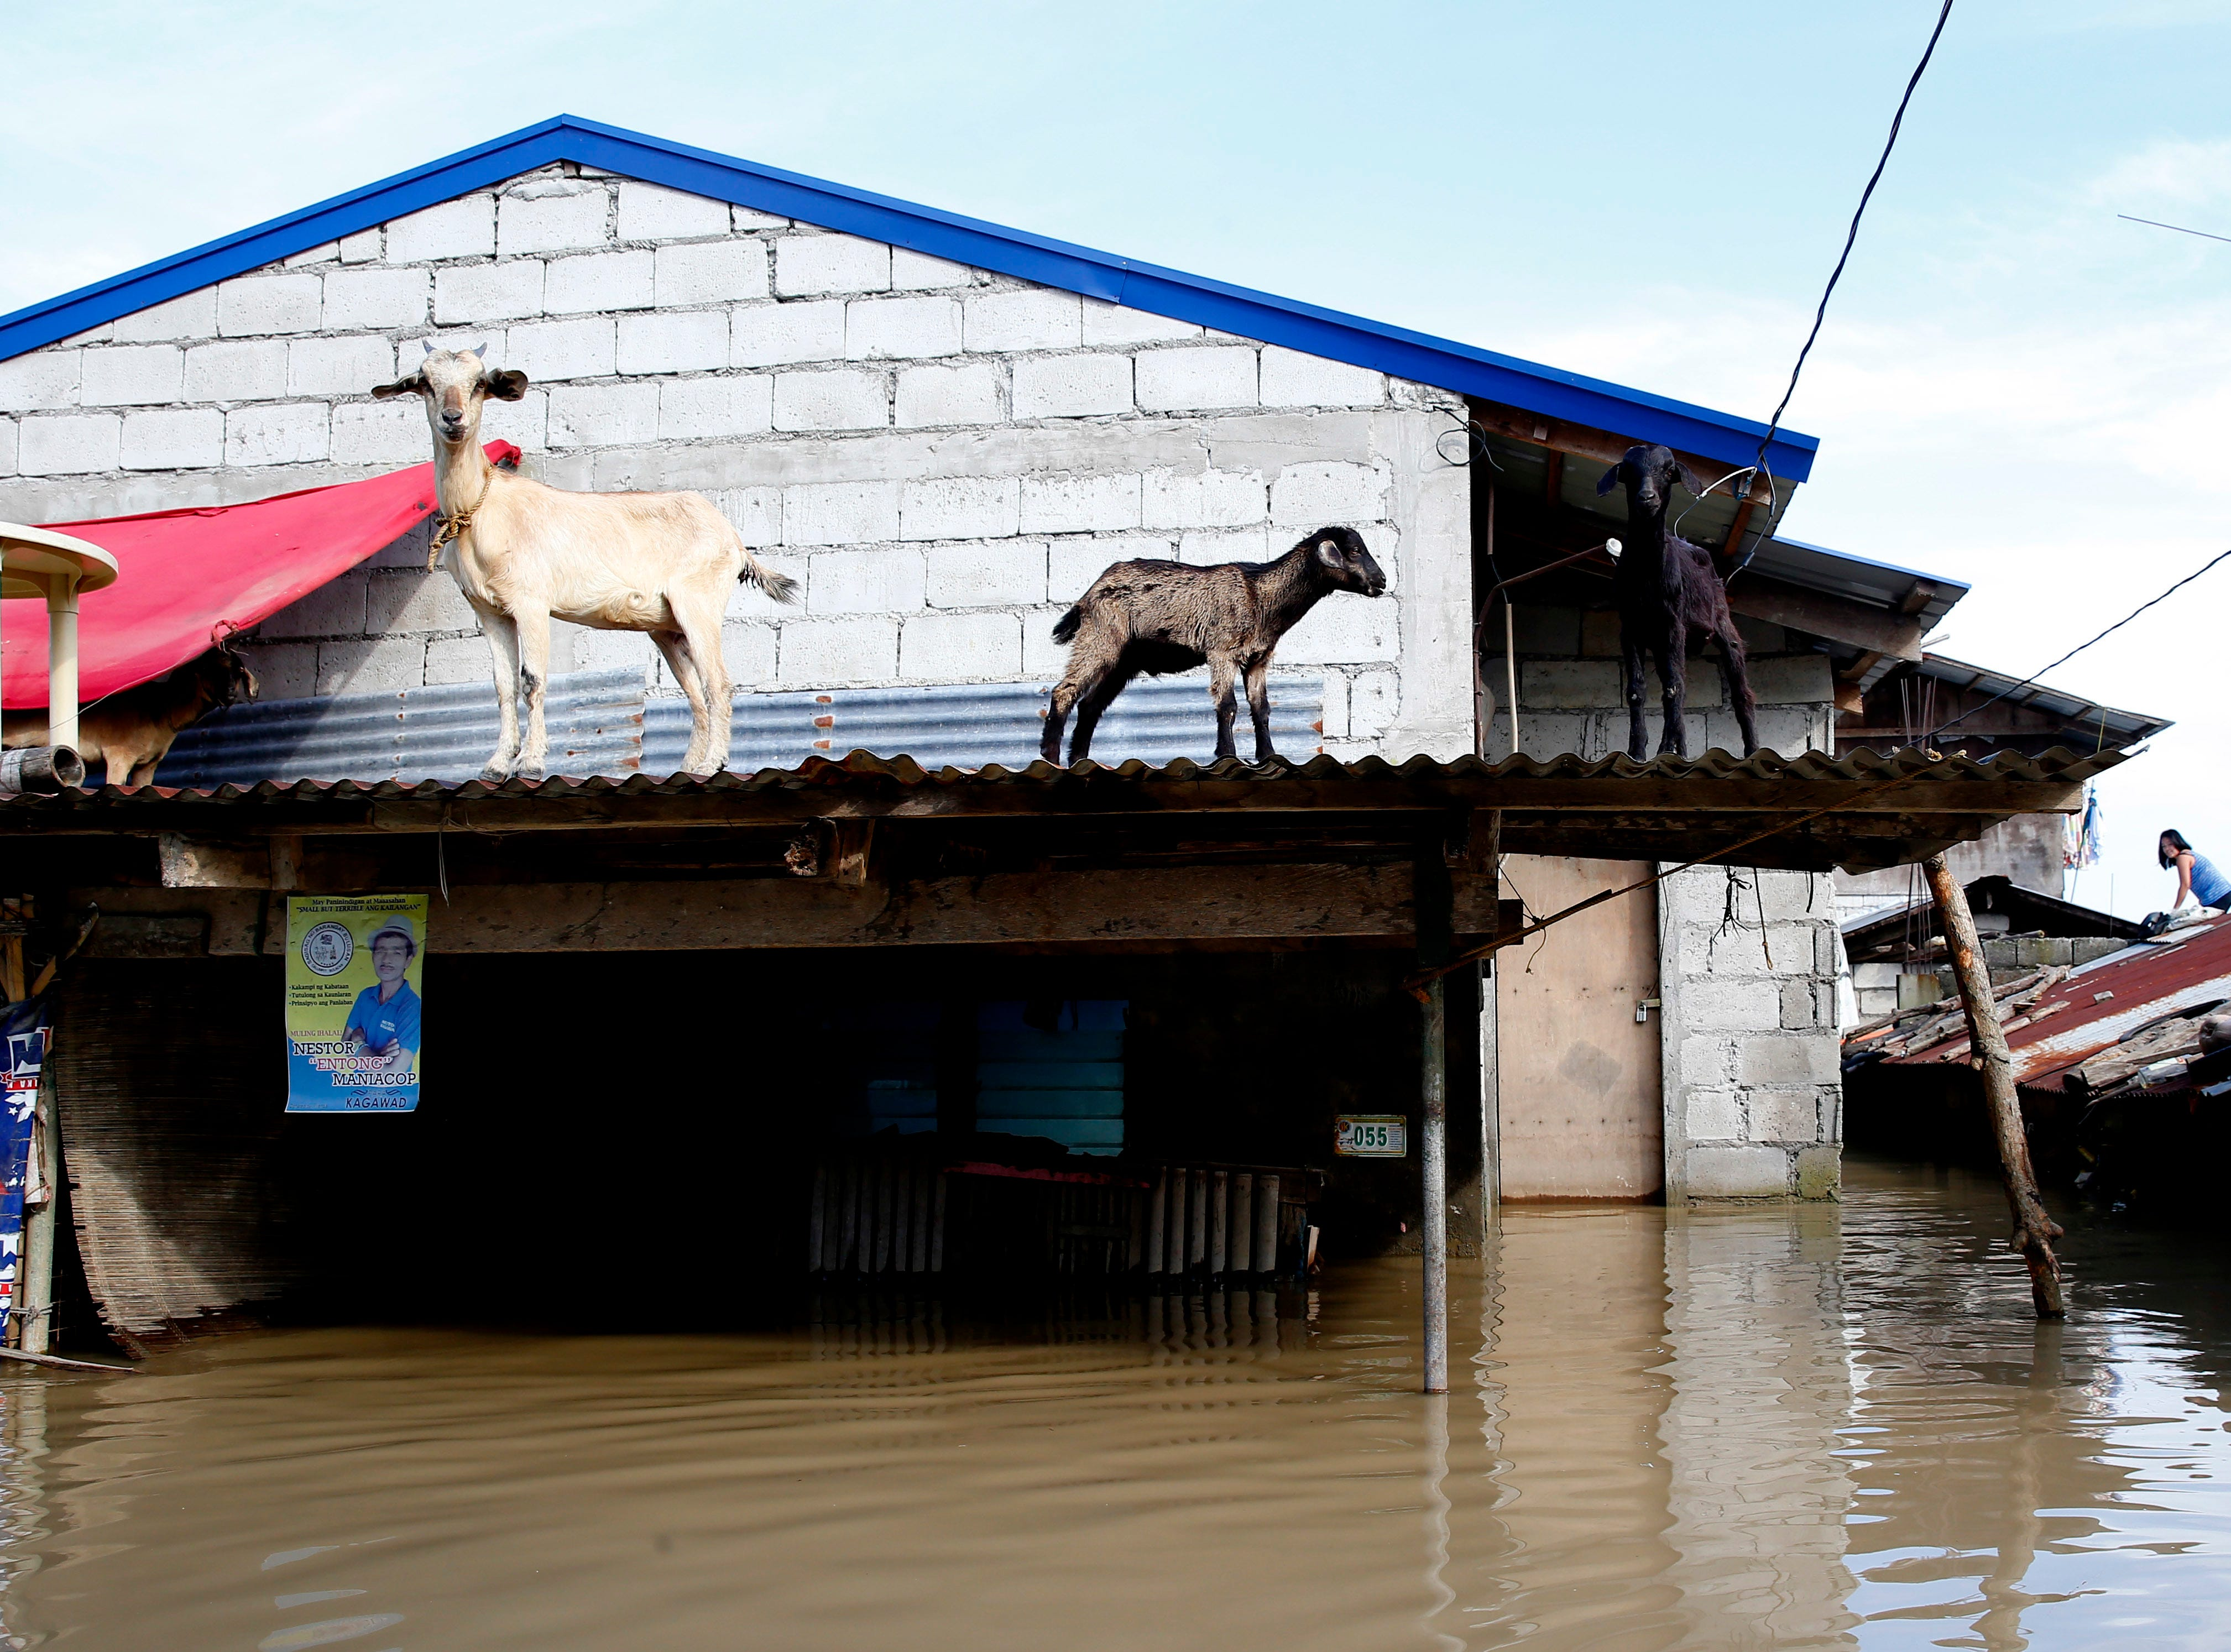 Goats stand on the roof amidst flooding brought about by Typhoon Mangkhut which barreled into northeastern Philippines during the weekend and inundated low-lying areas in its 900-kilometer wide cloud band, Monday, Sept. 17, 2018 in Calumpit township, Bulacan province north of Manila, Philippines.